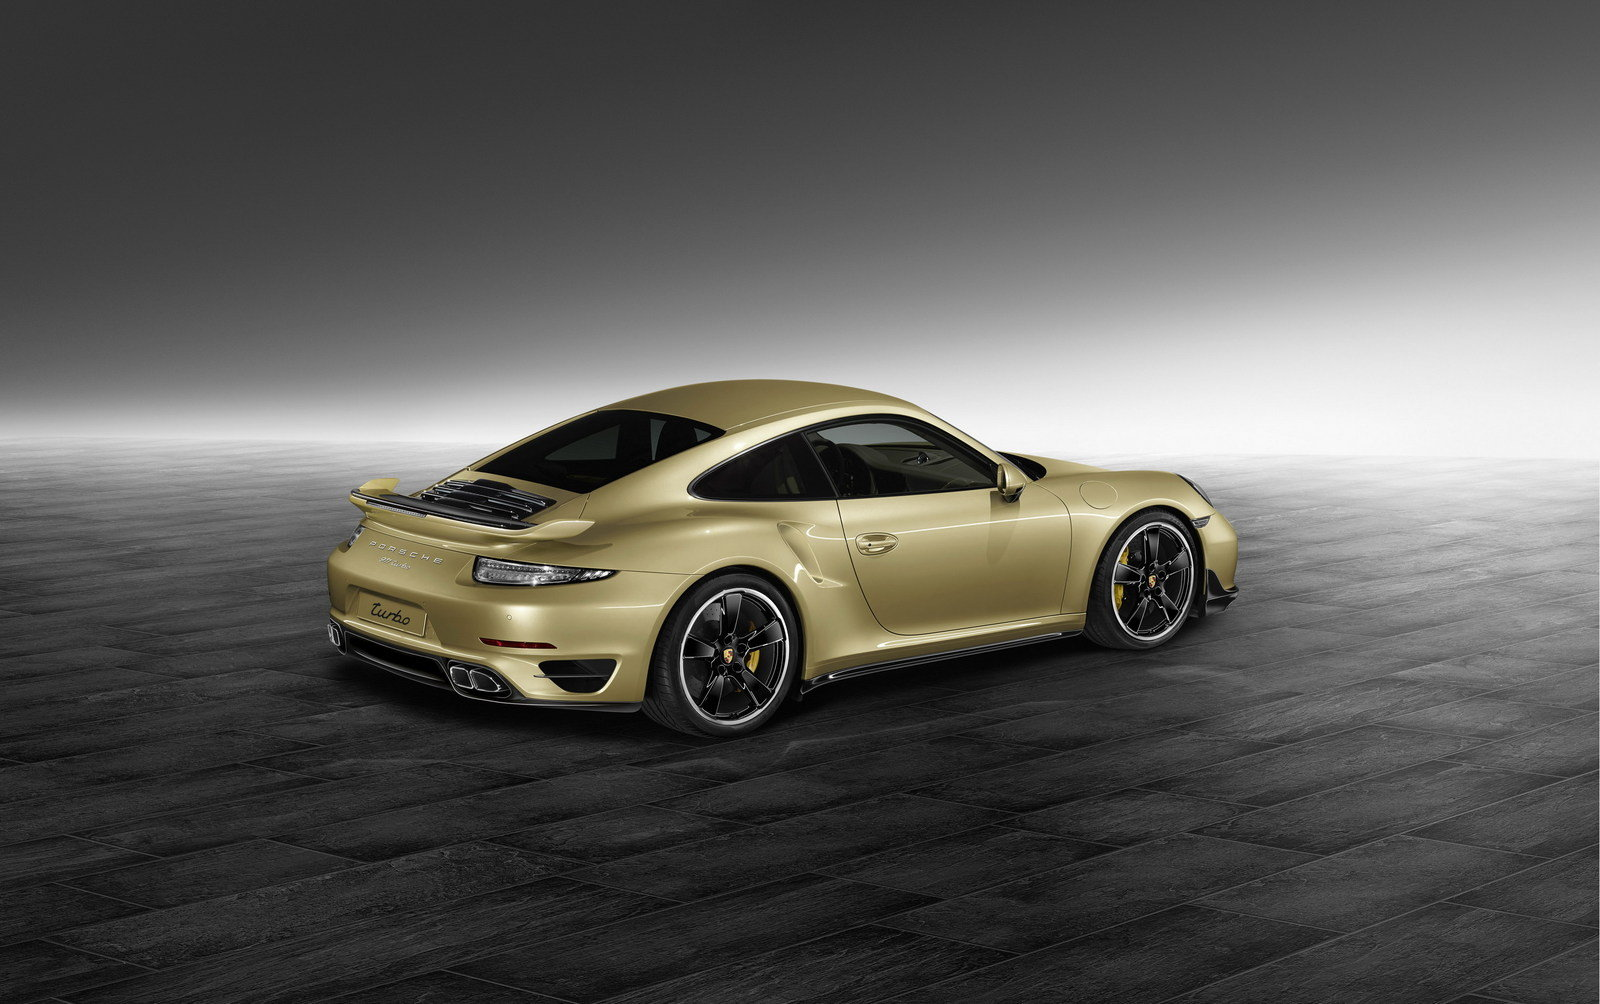 2015 porsche 911 turbo and turbo s aerokit picture 615073 car review top speed. Black Bedroom Furniture Sets. Home Design Ideas